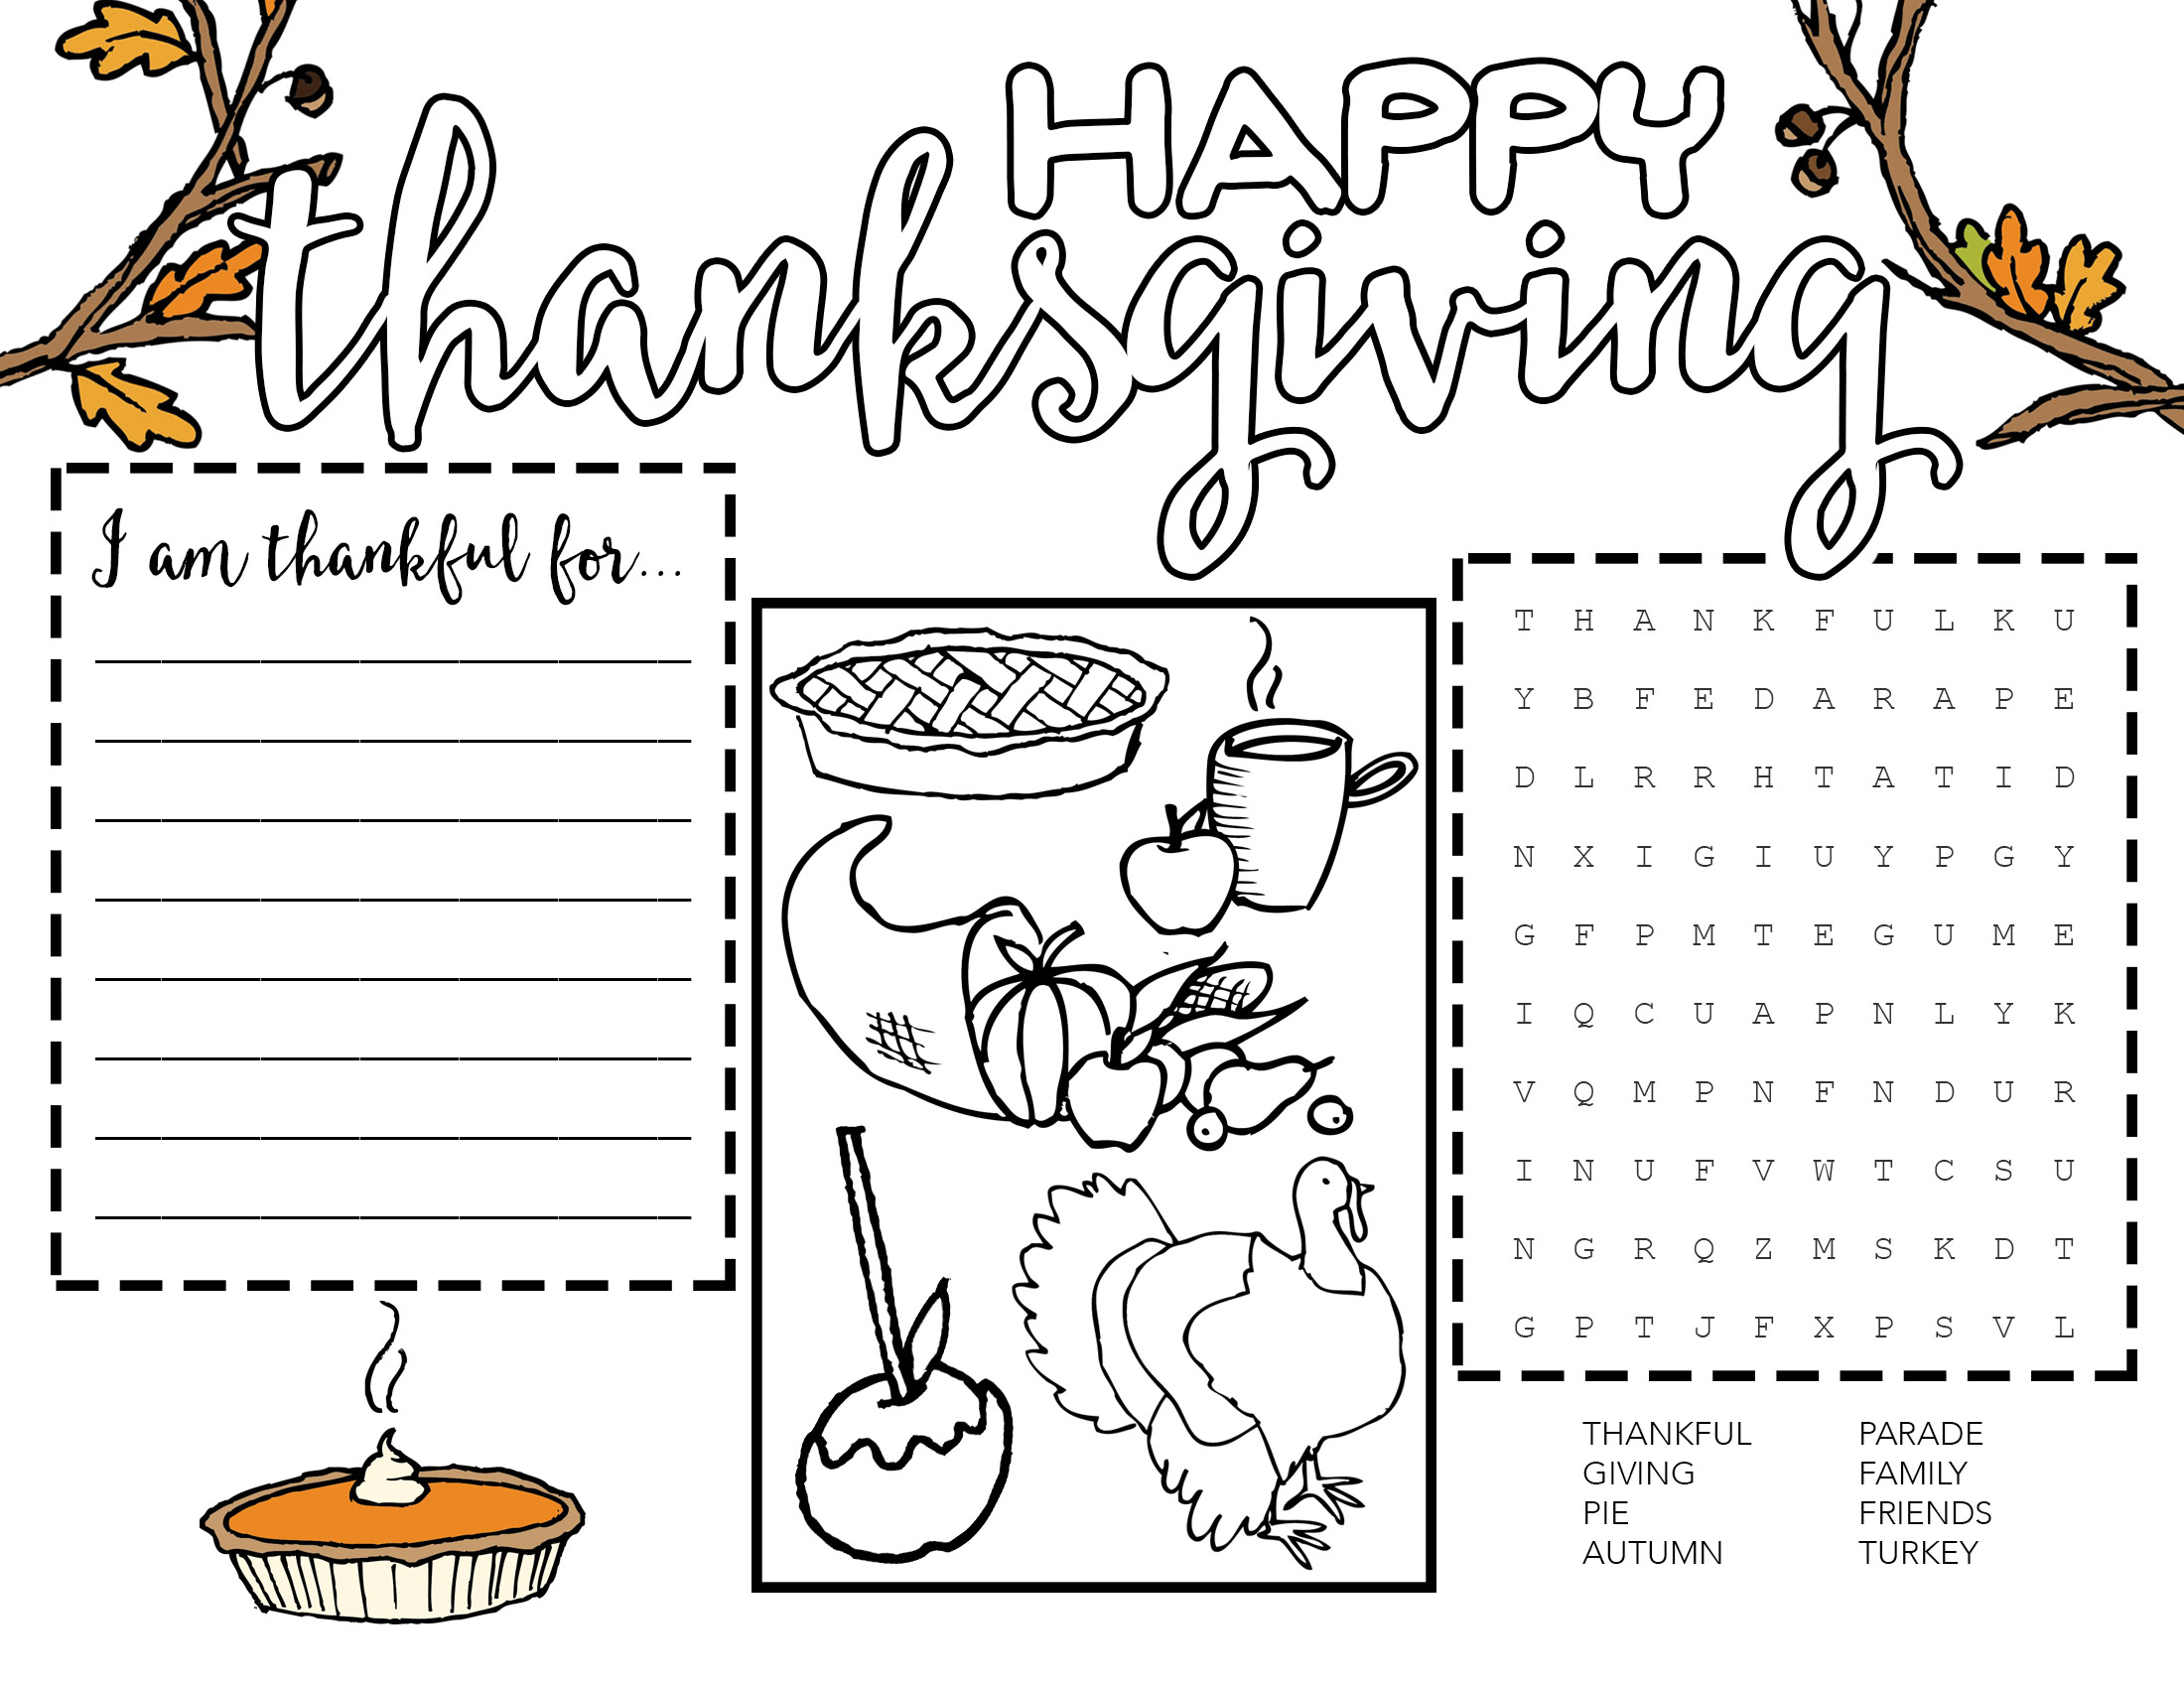 photograph relating to Thanksgiving Placemats Printable called Free of charge Printable Thanksgiving Placemat - Our Handcrafted Lifetime